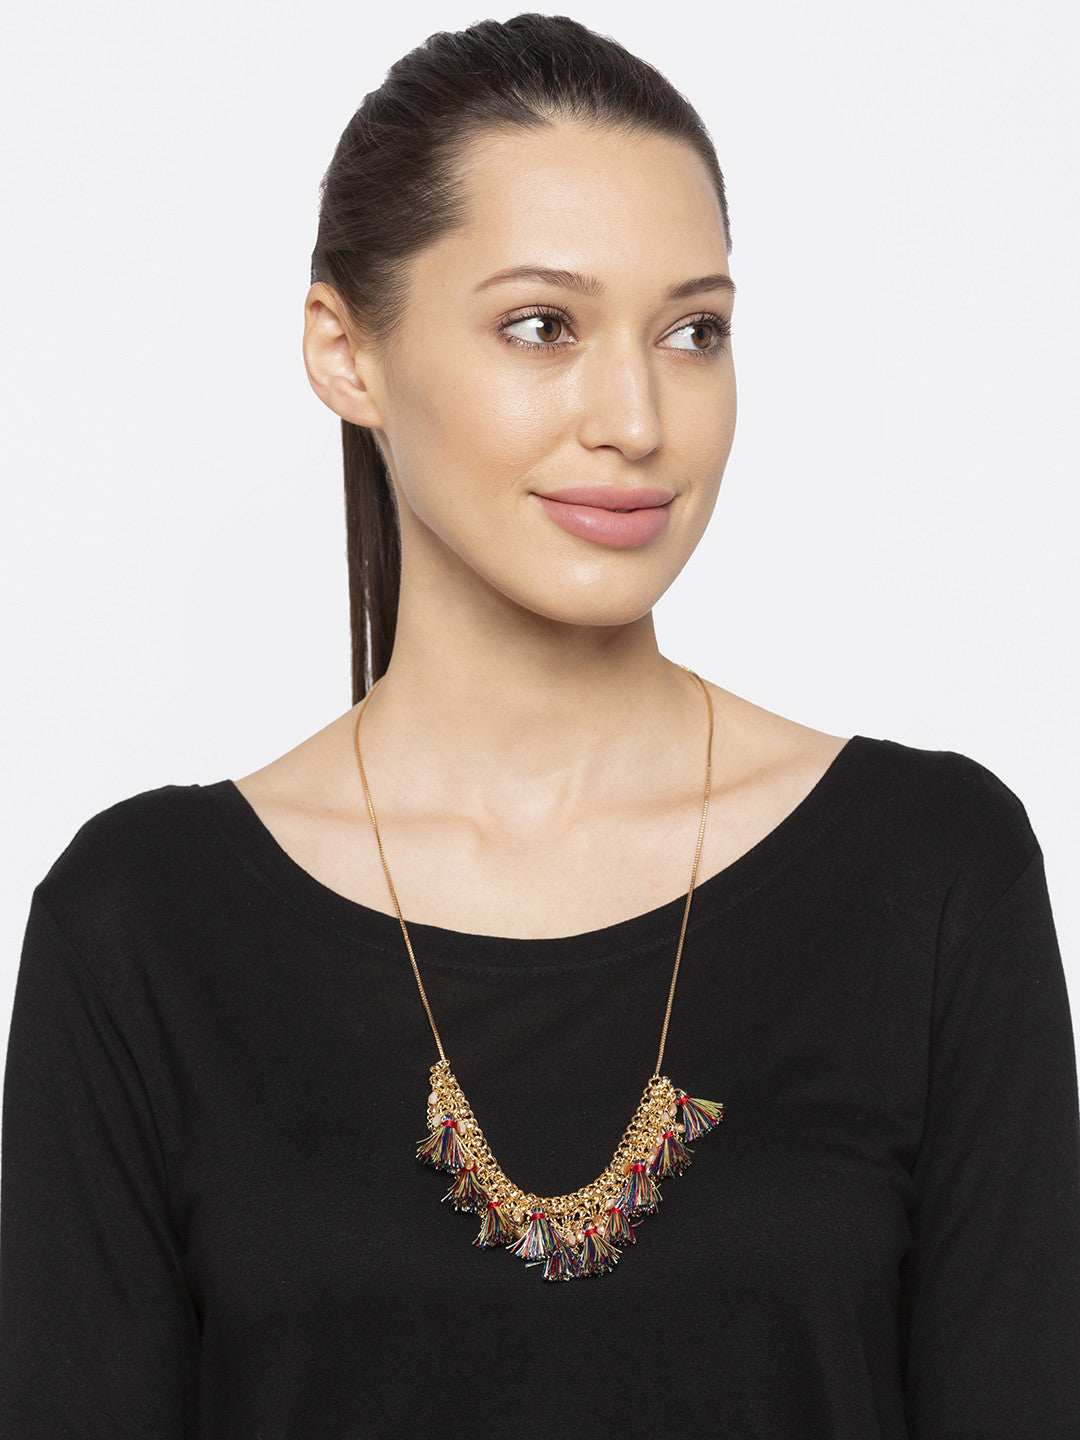 Gold Stones and Beads Necklace-3